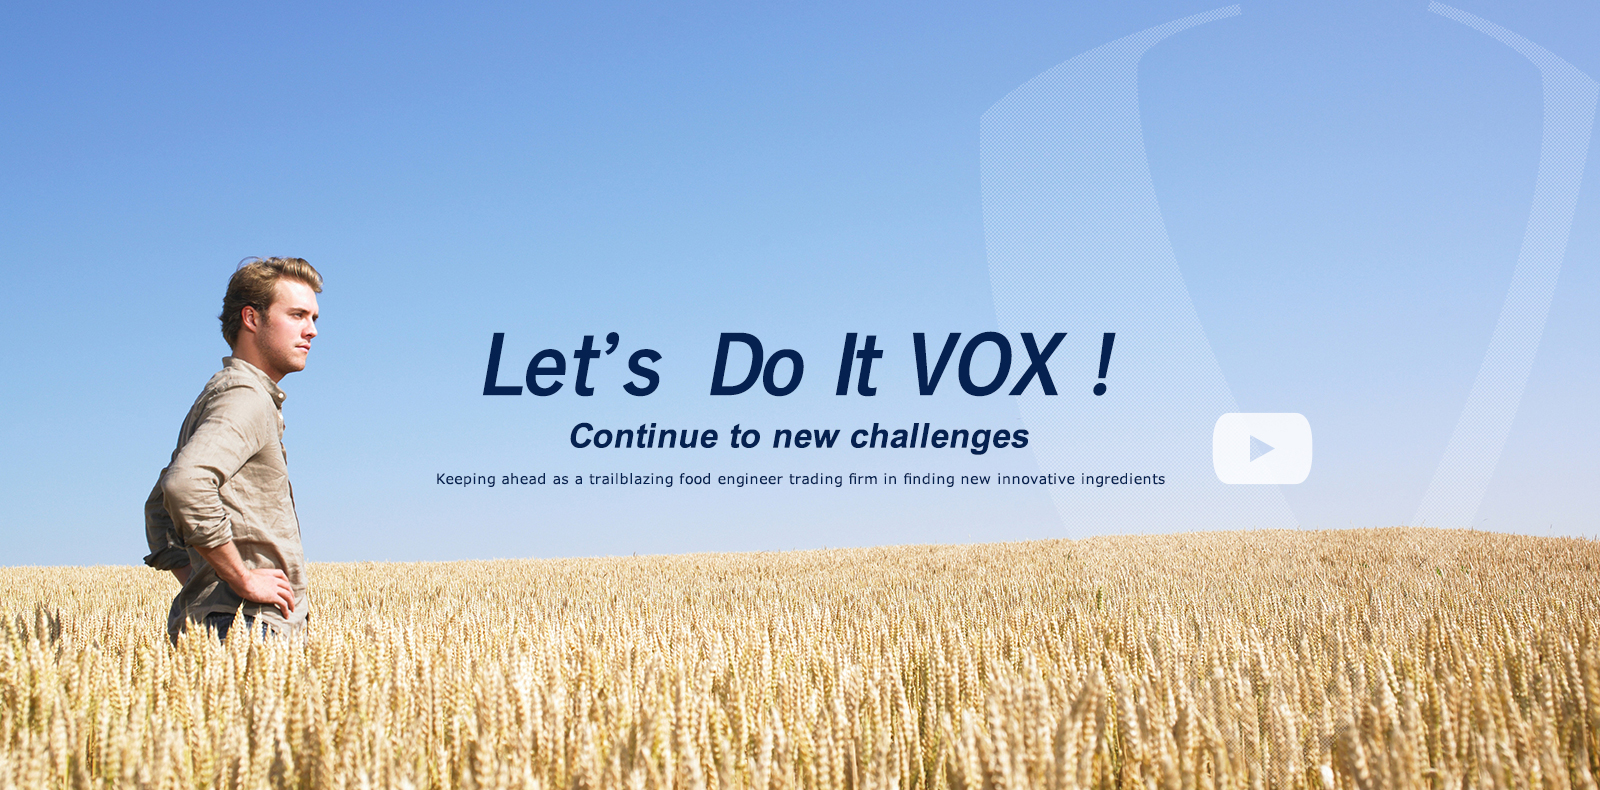 Let's Get It Done VOX! Continue to new challenges. Keeping ahead as a pioneering Food Engineering company in finding new innovative ingredients.